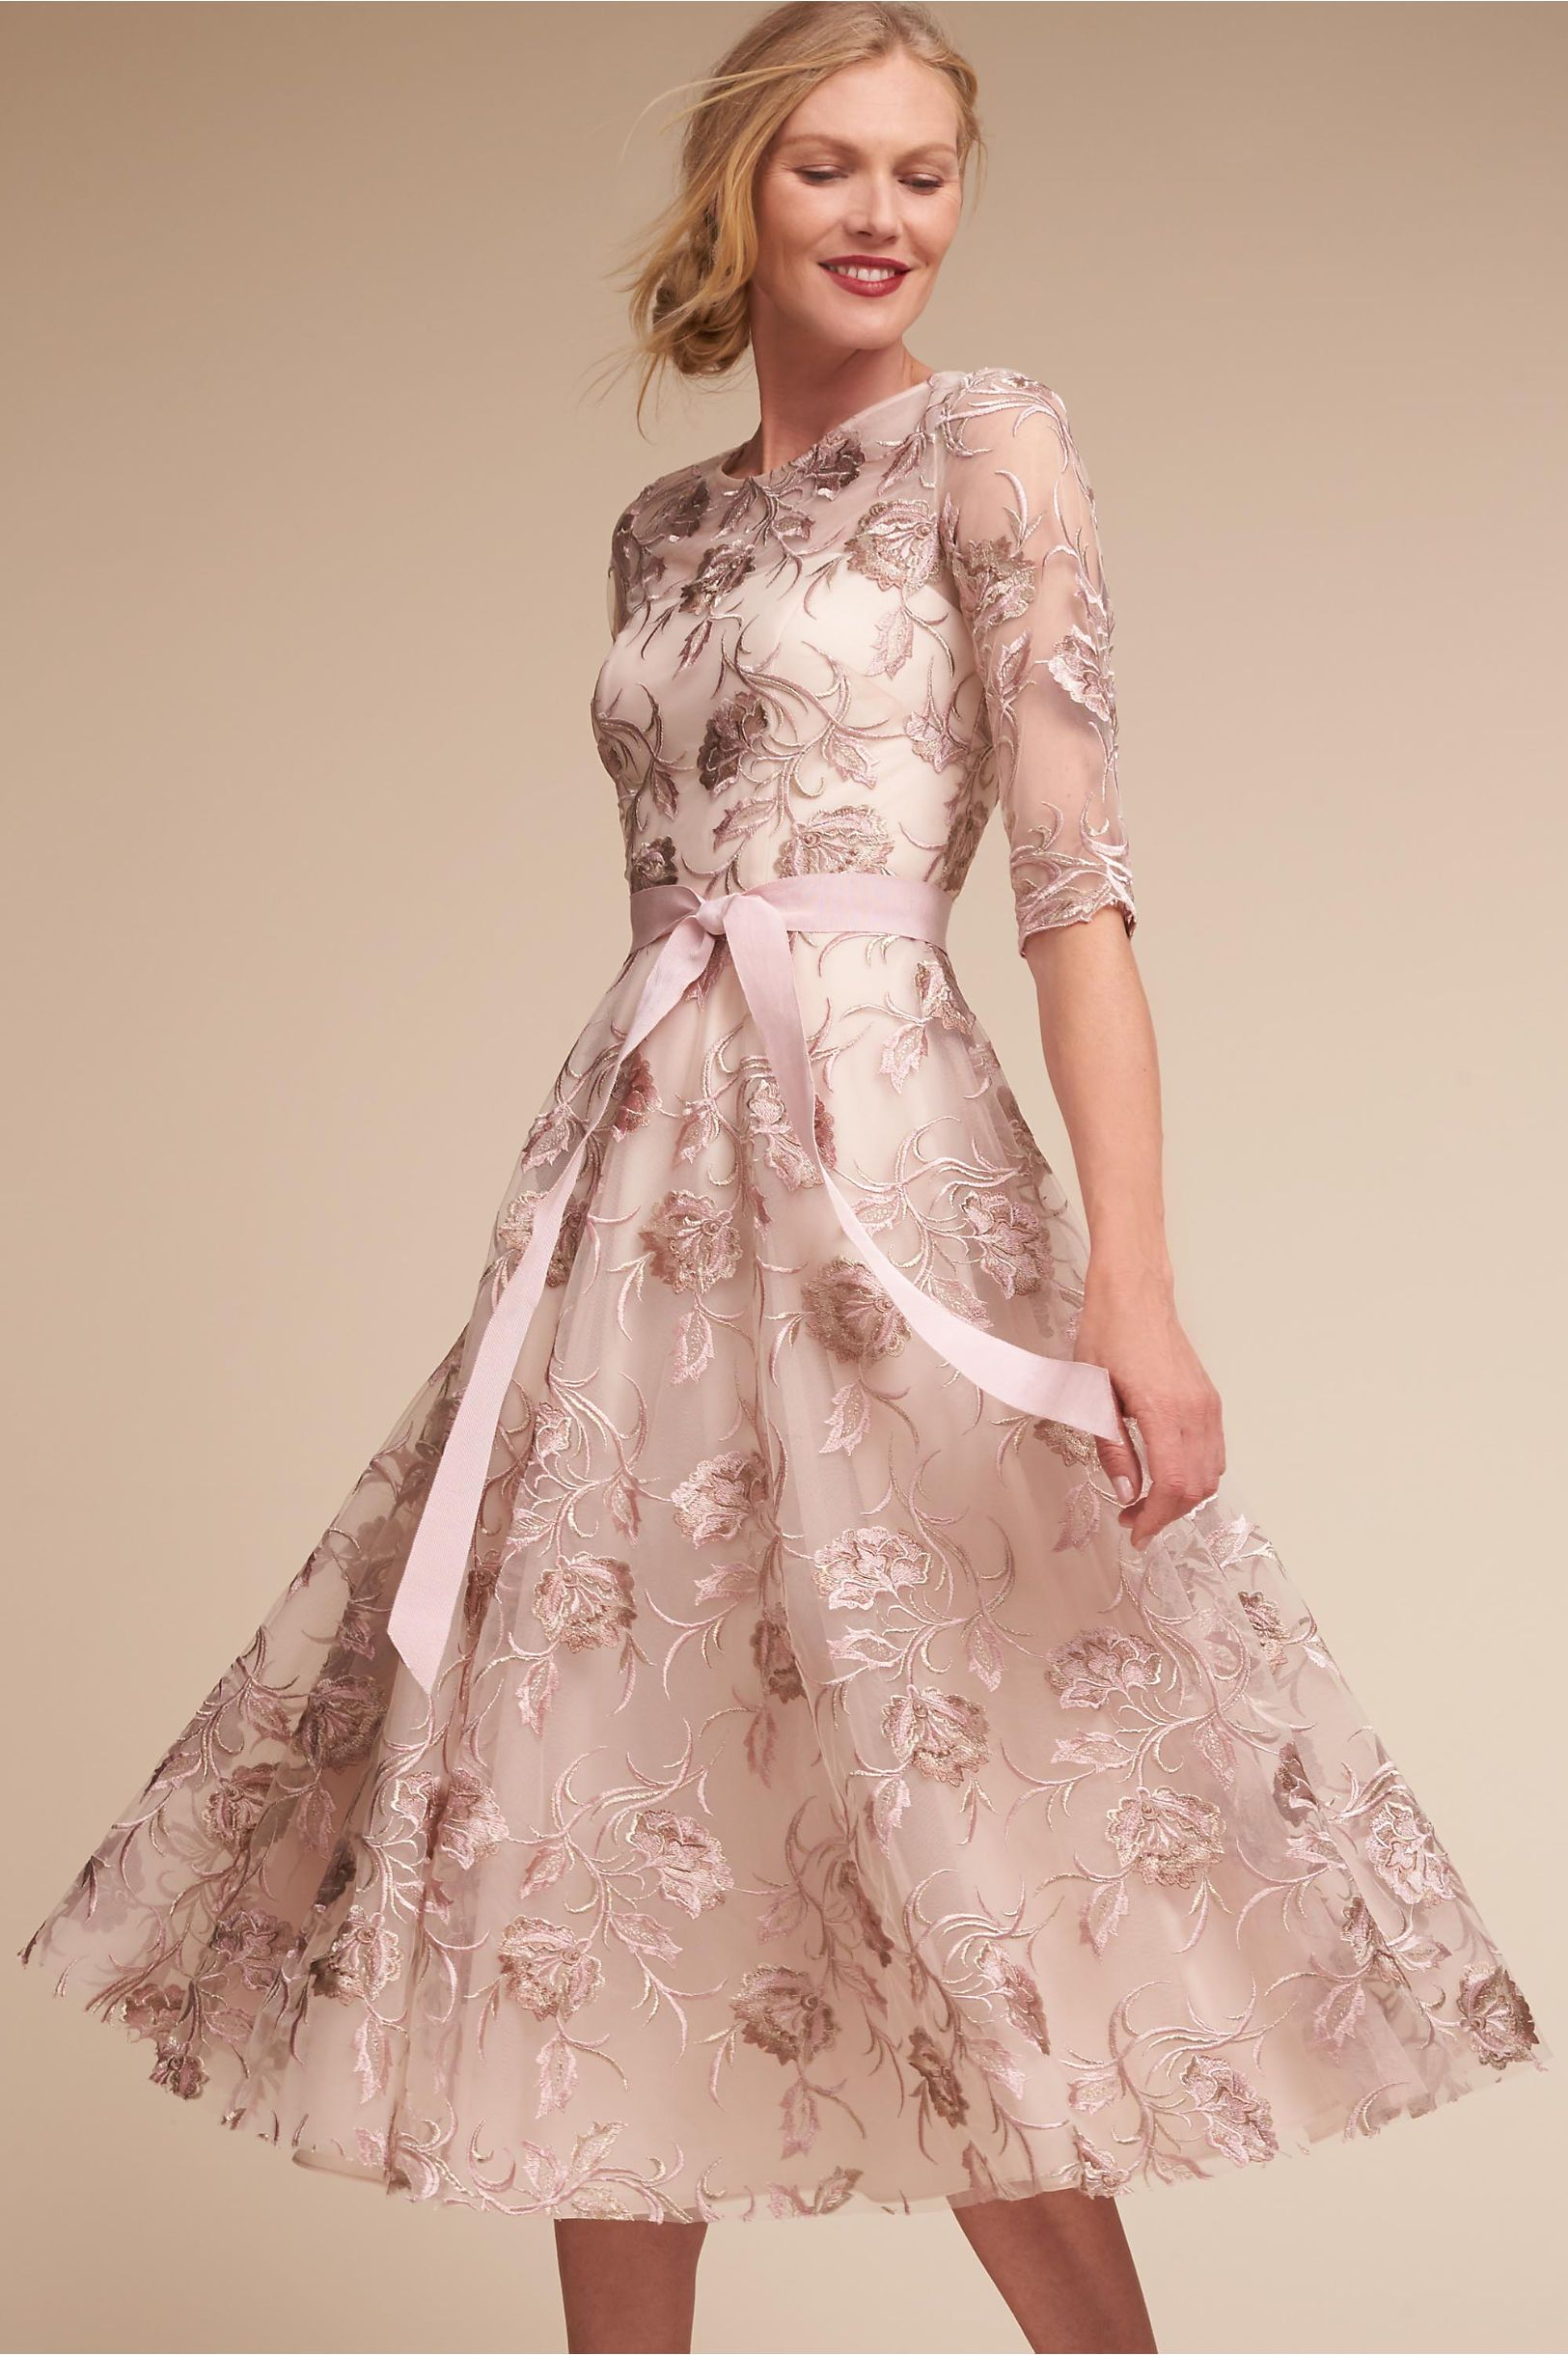 8ed043a5858b BHLDN s Linden Dress in Blush Multi